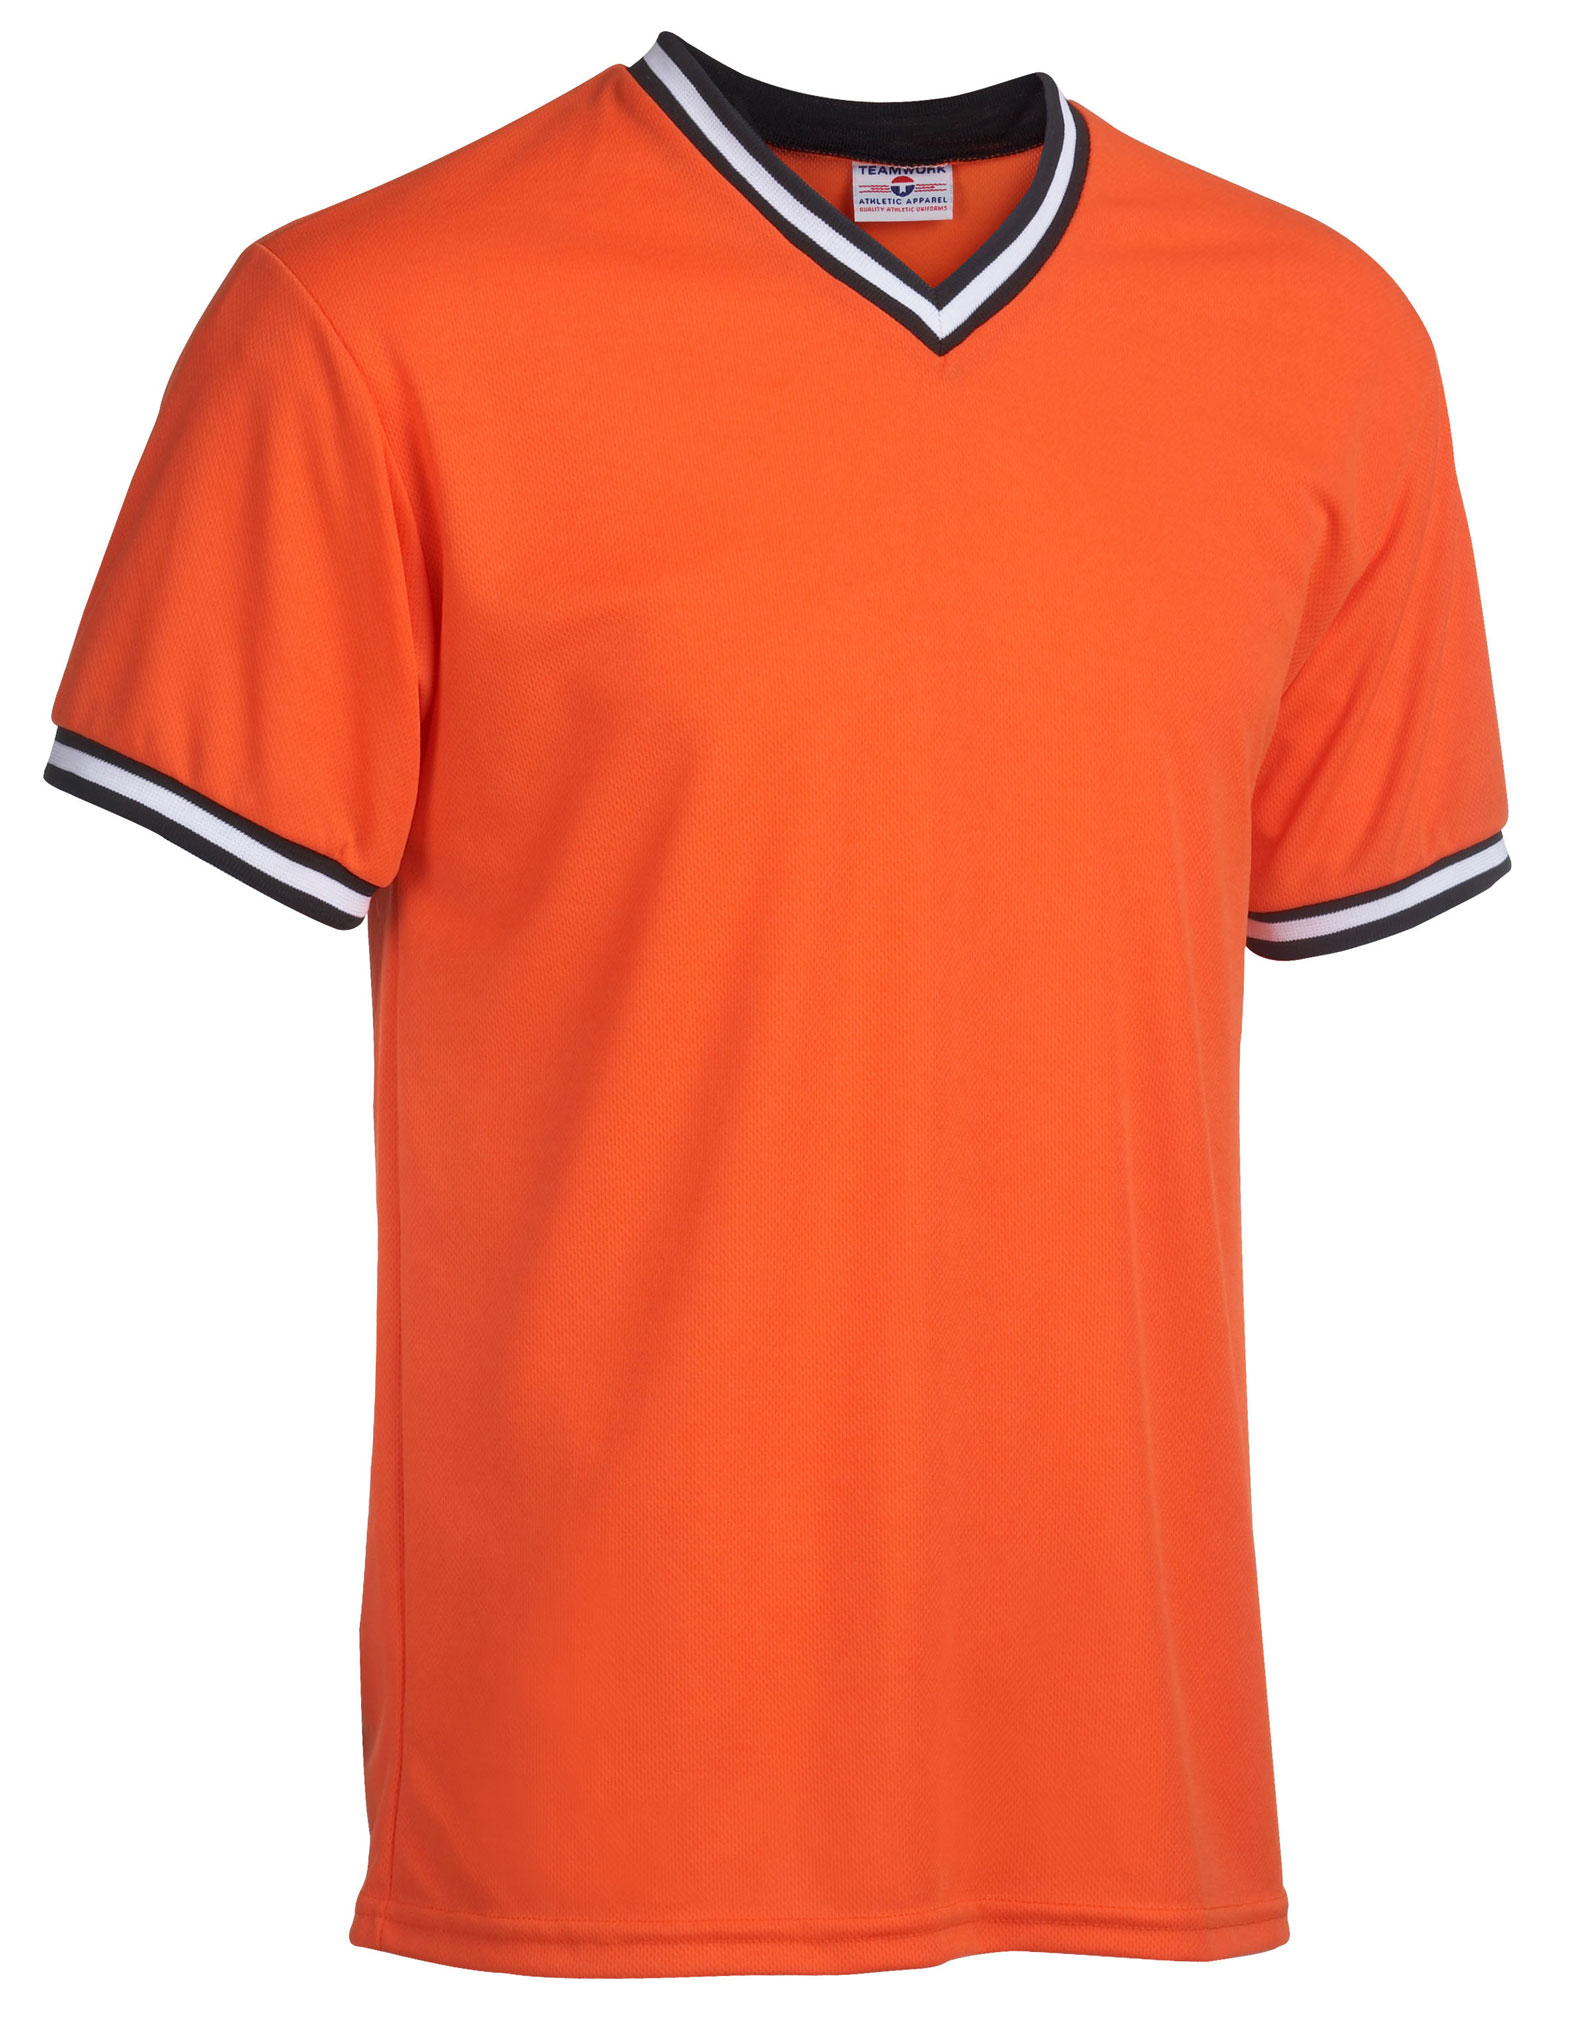 Teamwork Youth V-Neck Baseball Shirt - CLOSEOUT